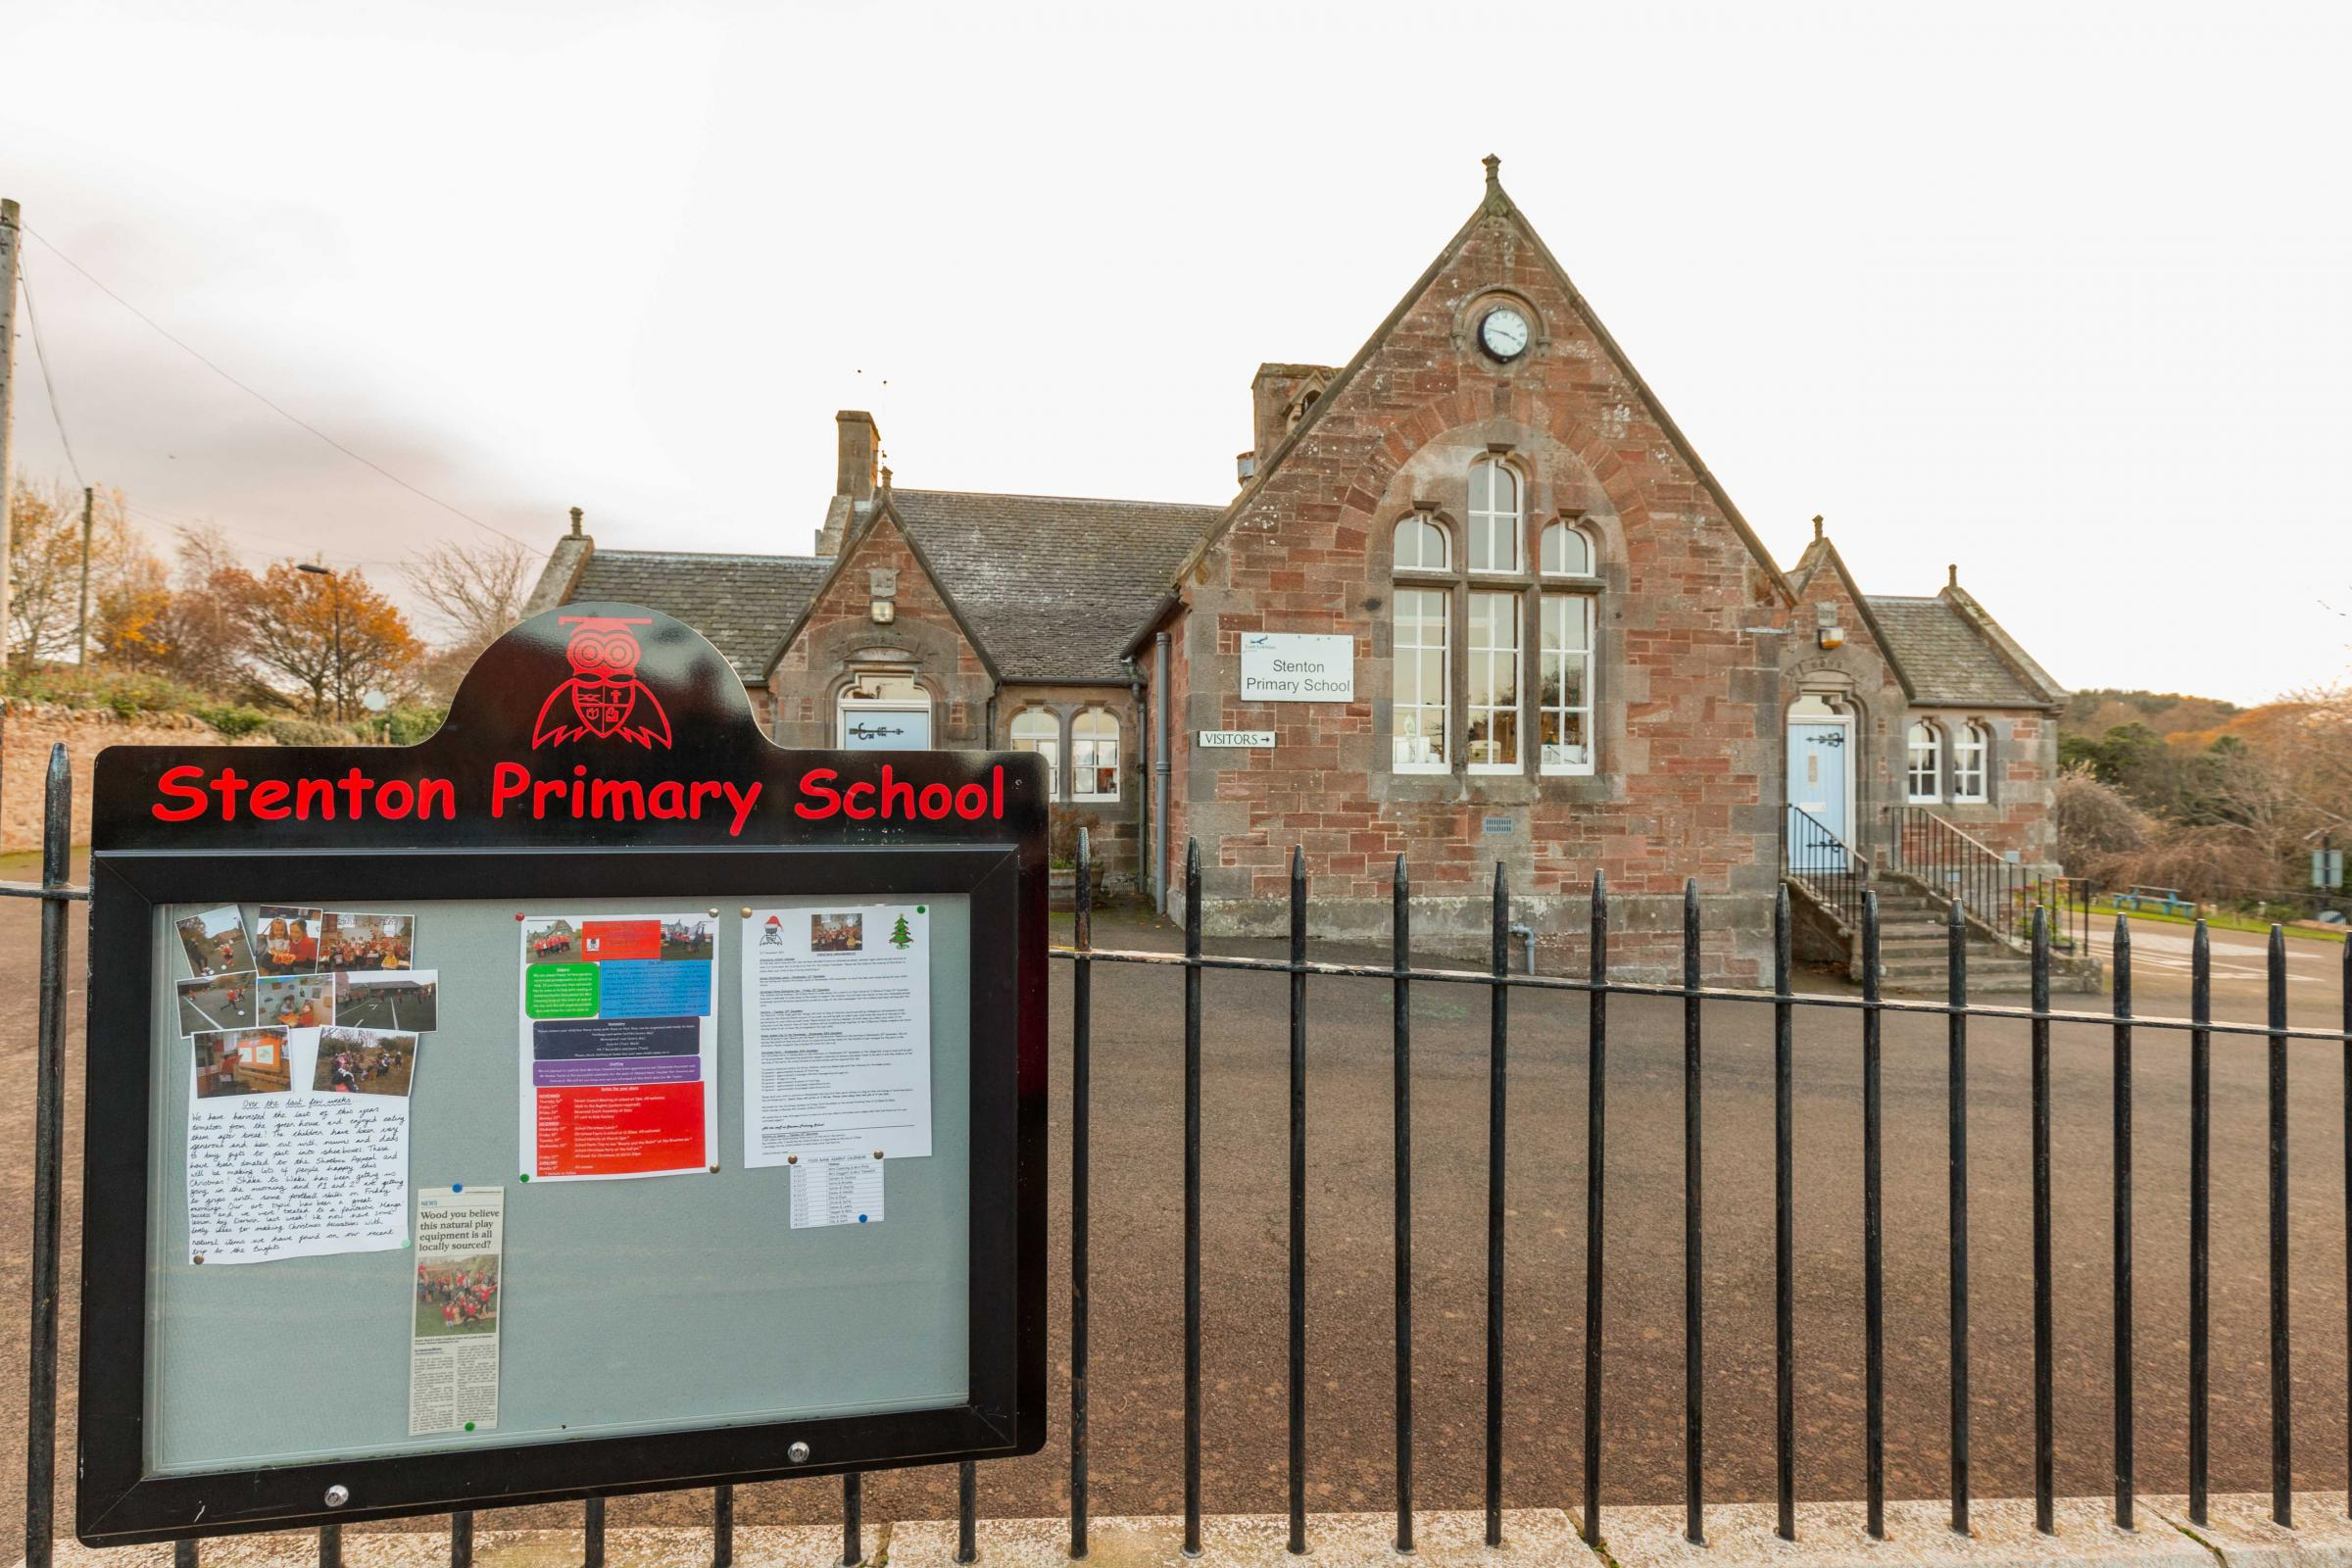 Stenton Primary School could be at risk of closure under one of the council's options for saving money